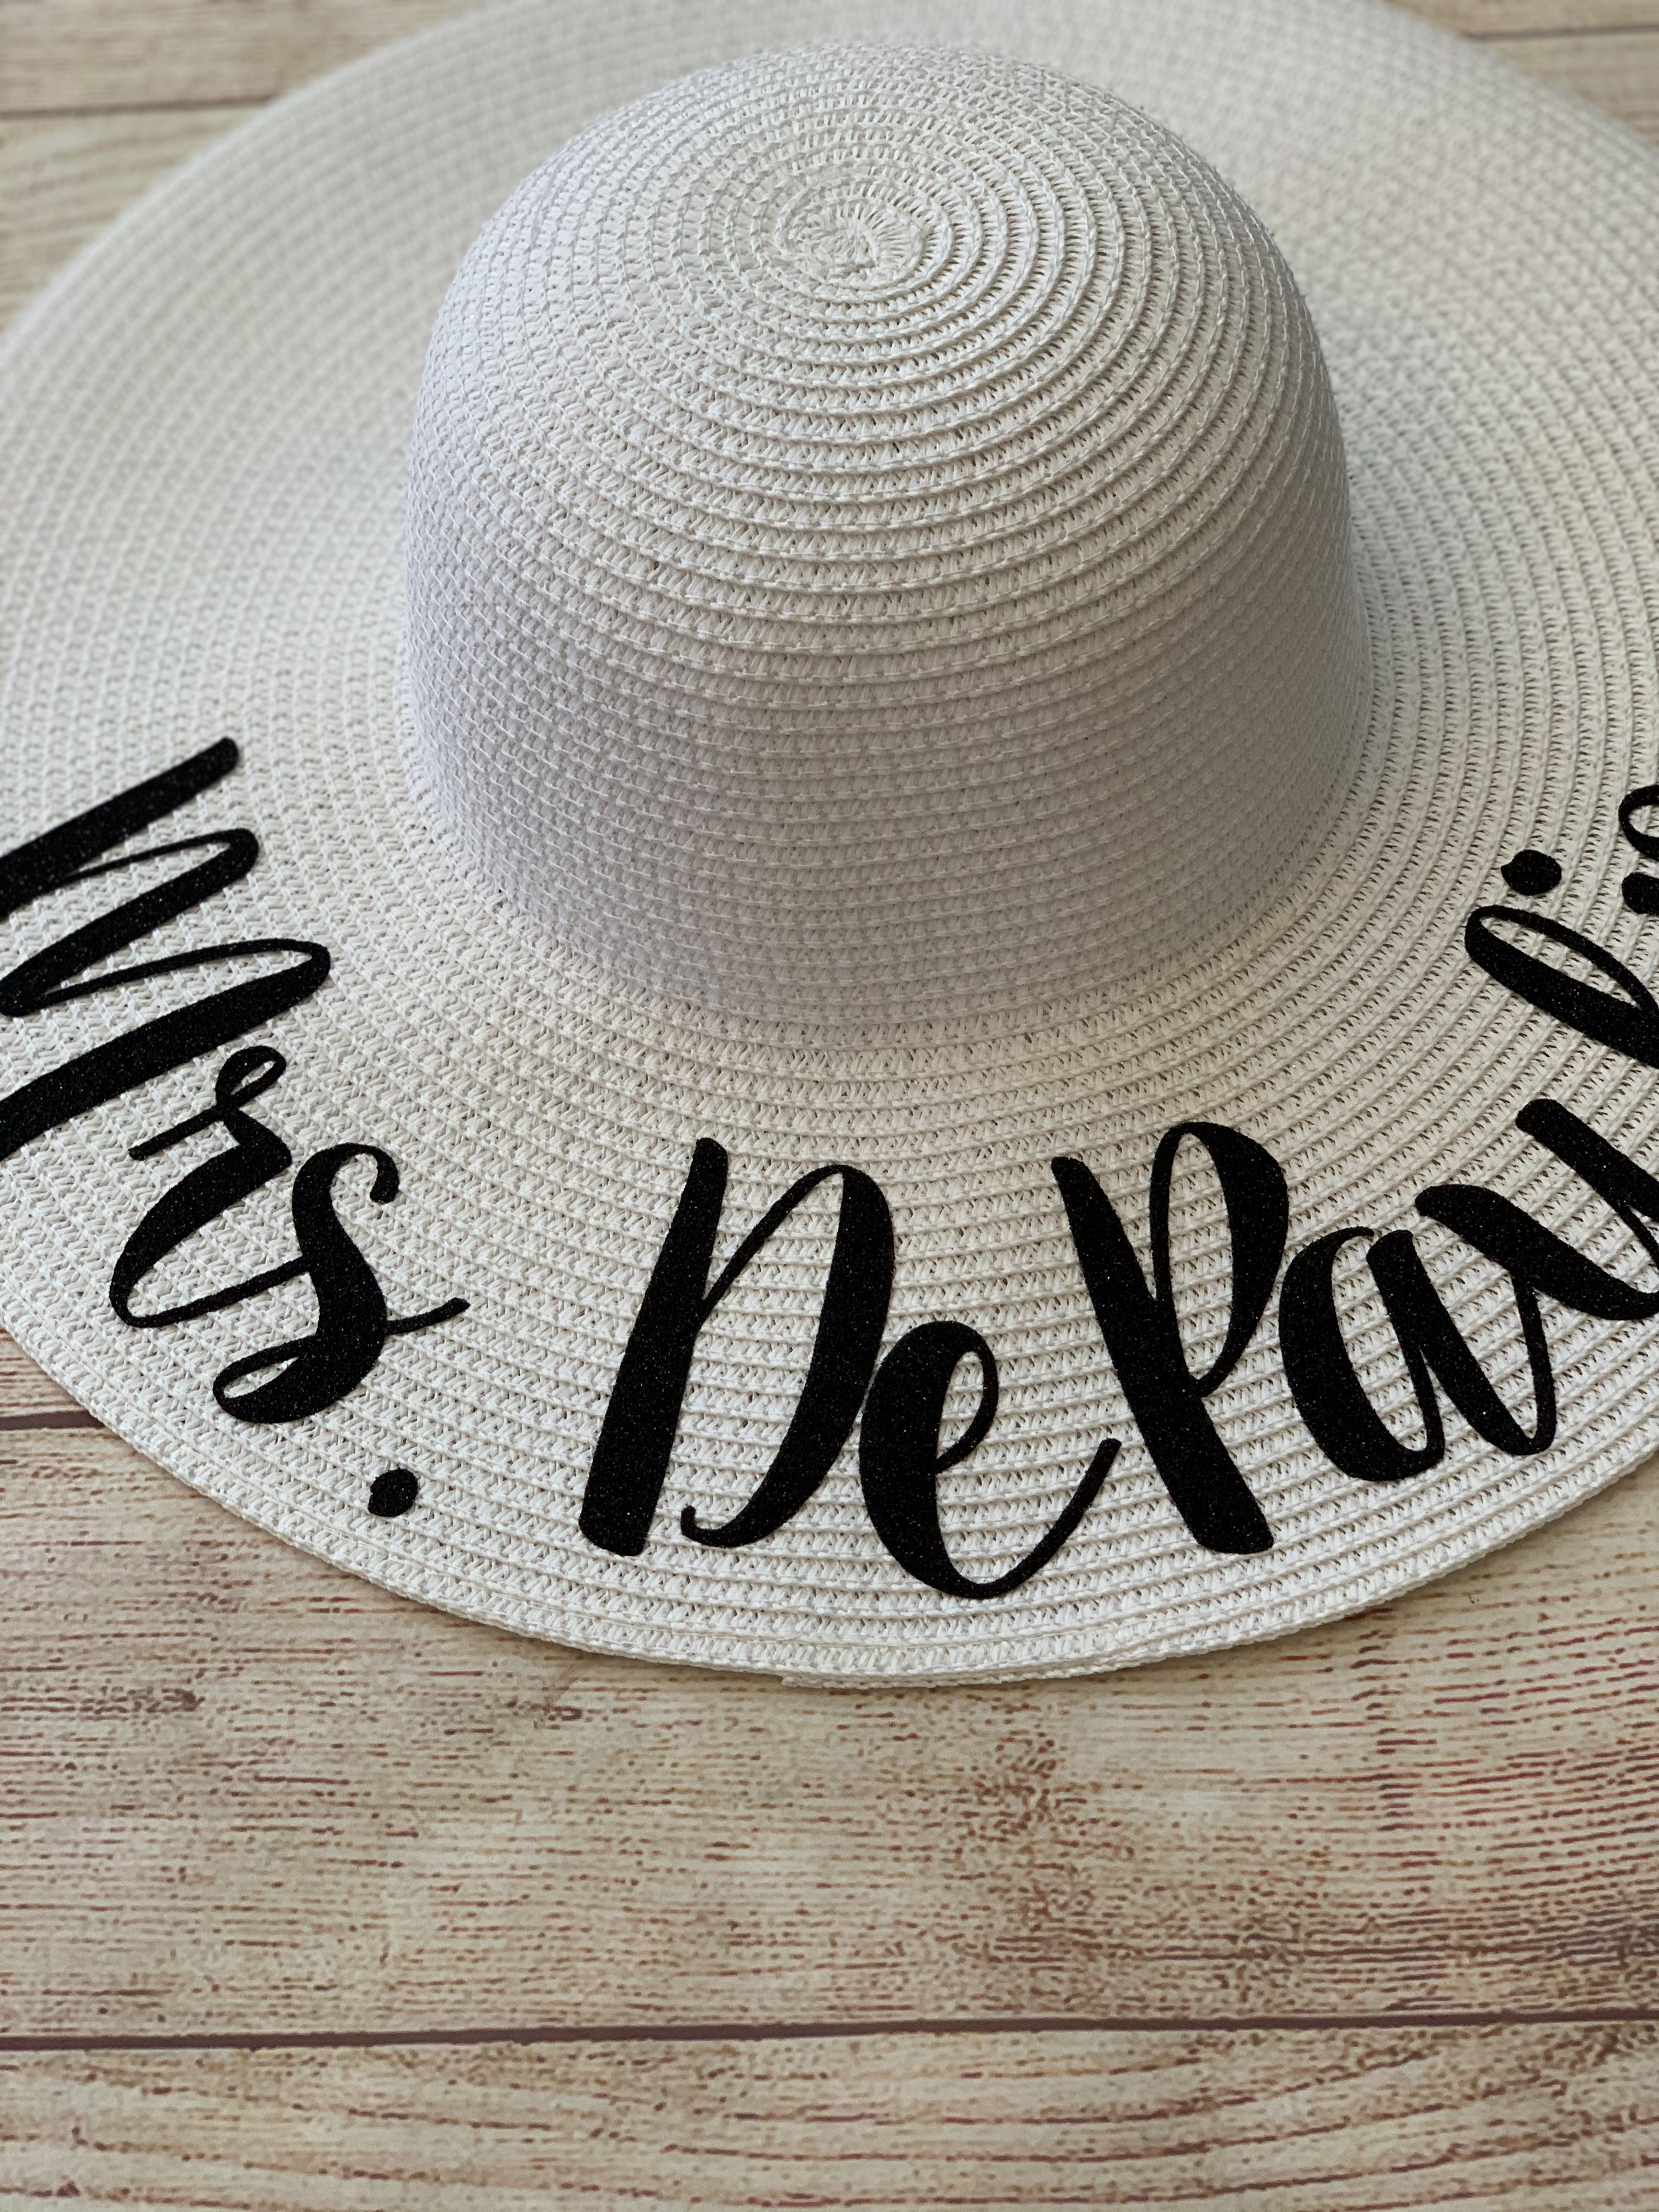 White hat with black glitter lettering. Wicked Stitches Gifts Honeymoon Hat